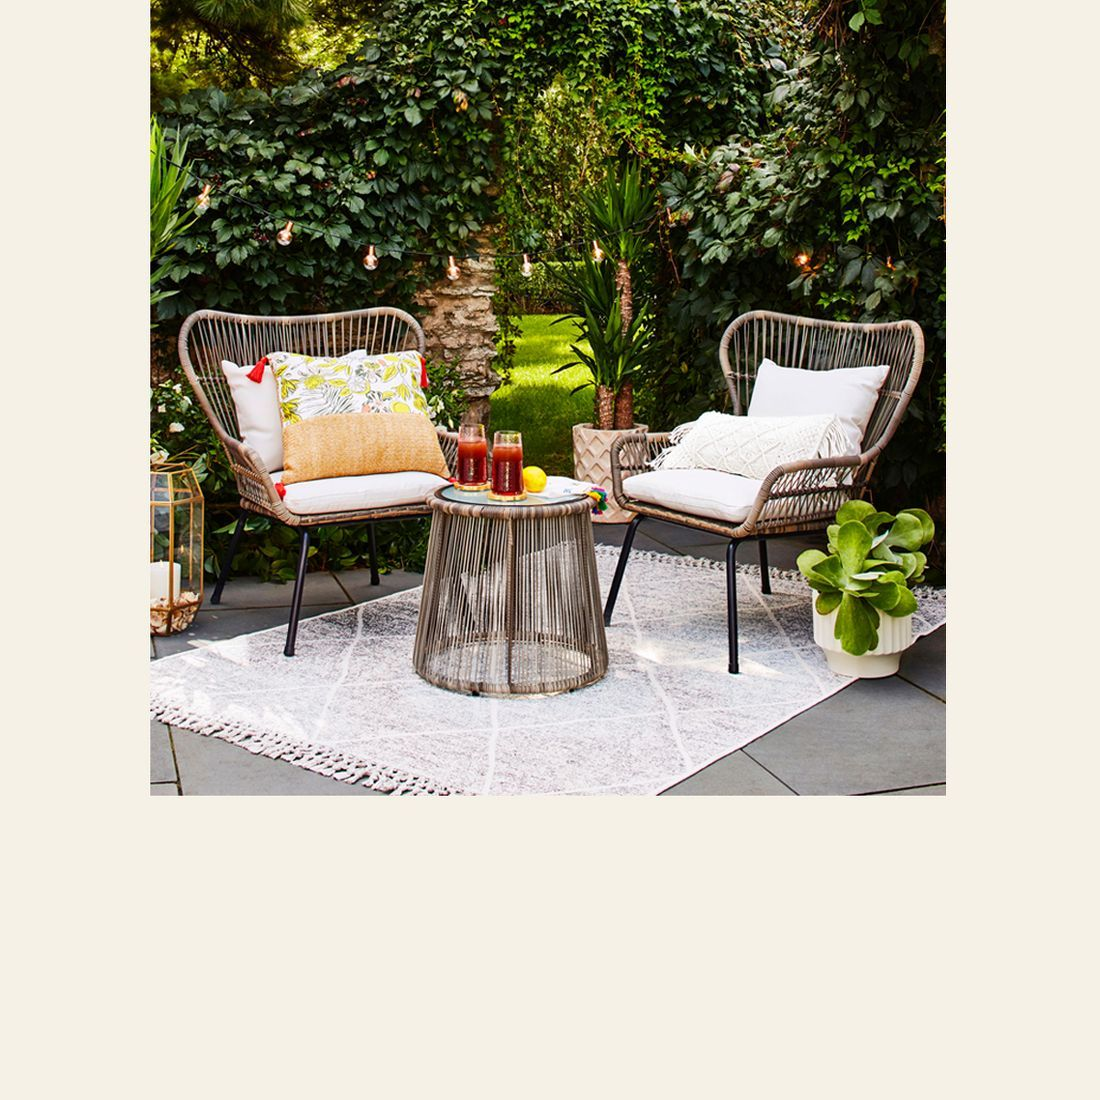 Patio Ideas & Inspiration : Target in 2020 | Beautiful ... on Target Outdoor Living id=52144